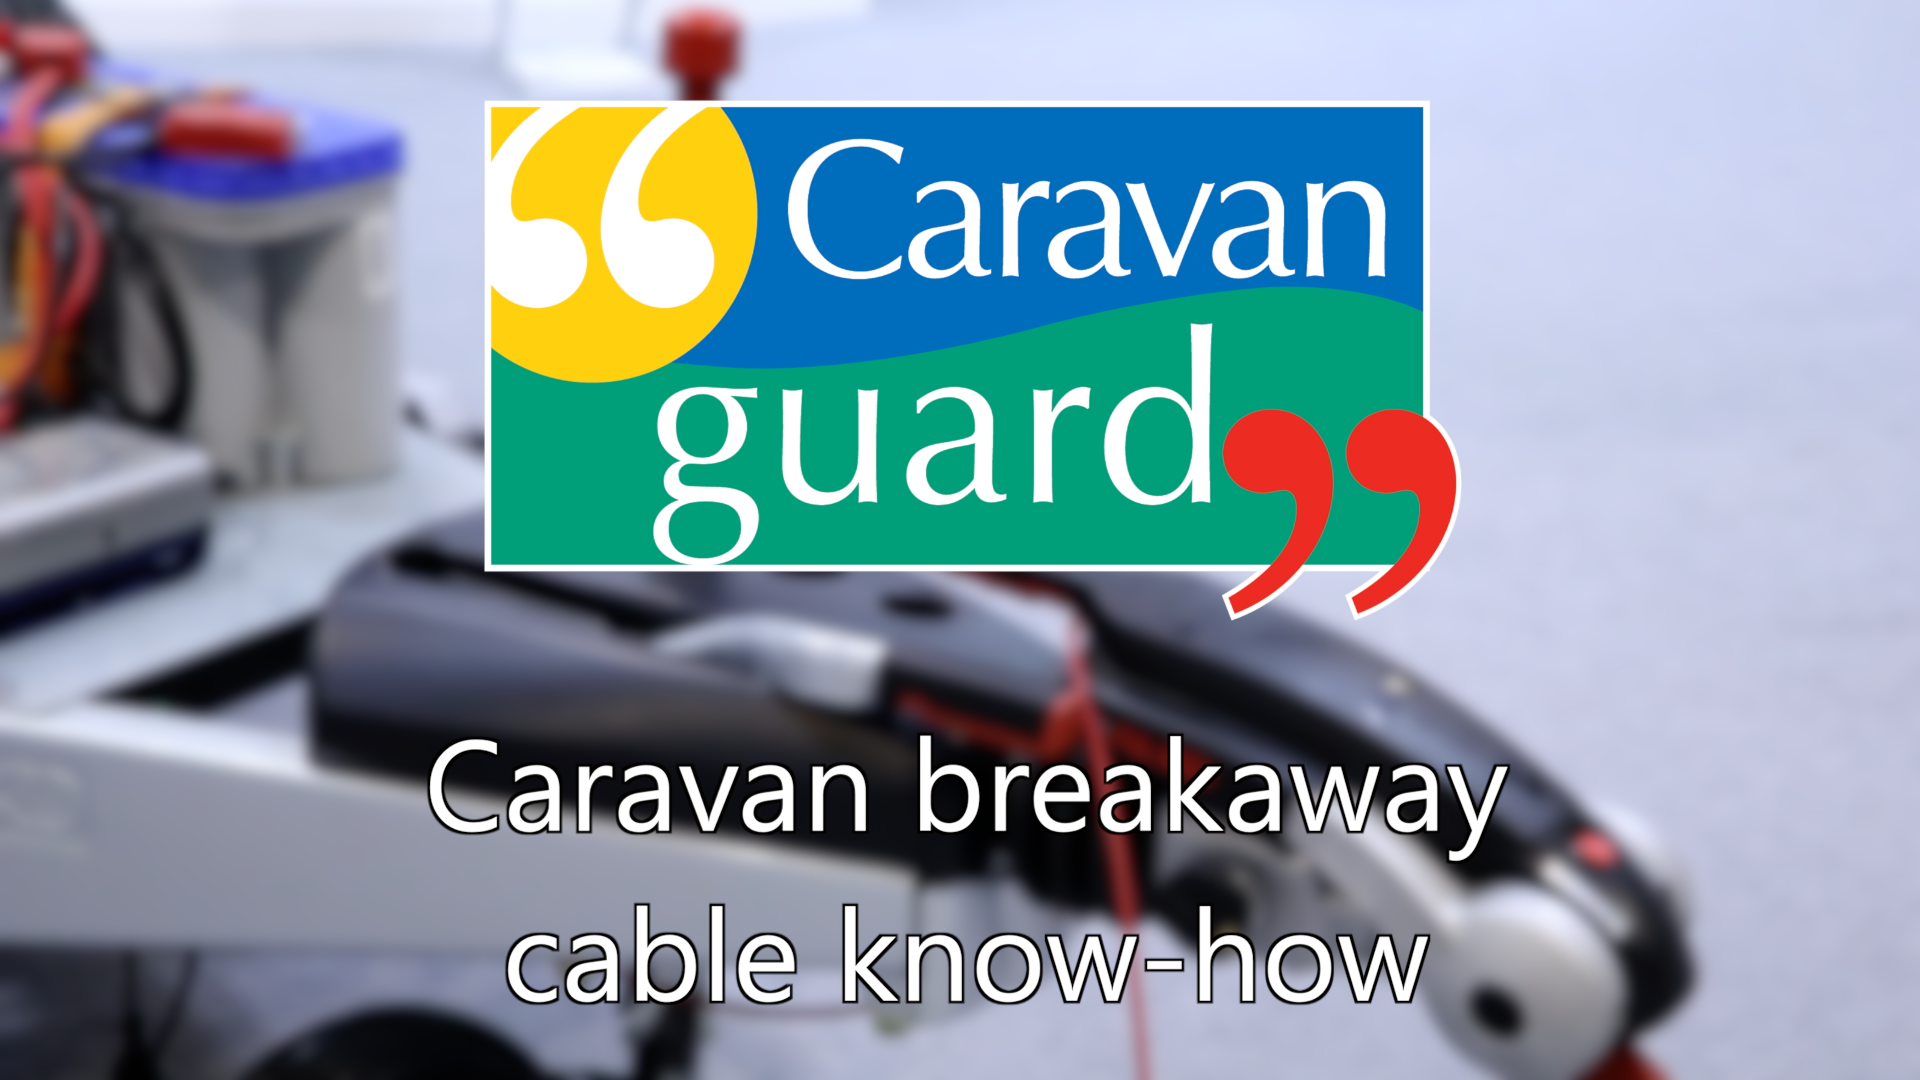 Video: All about caravan breakaway cables - Caravan Guard